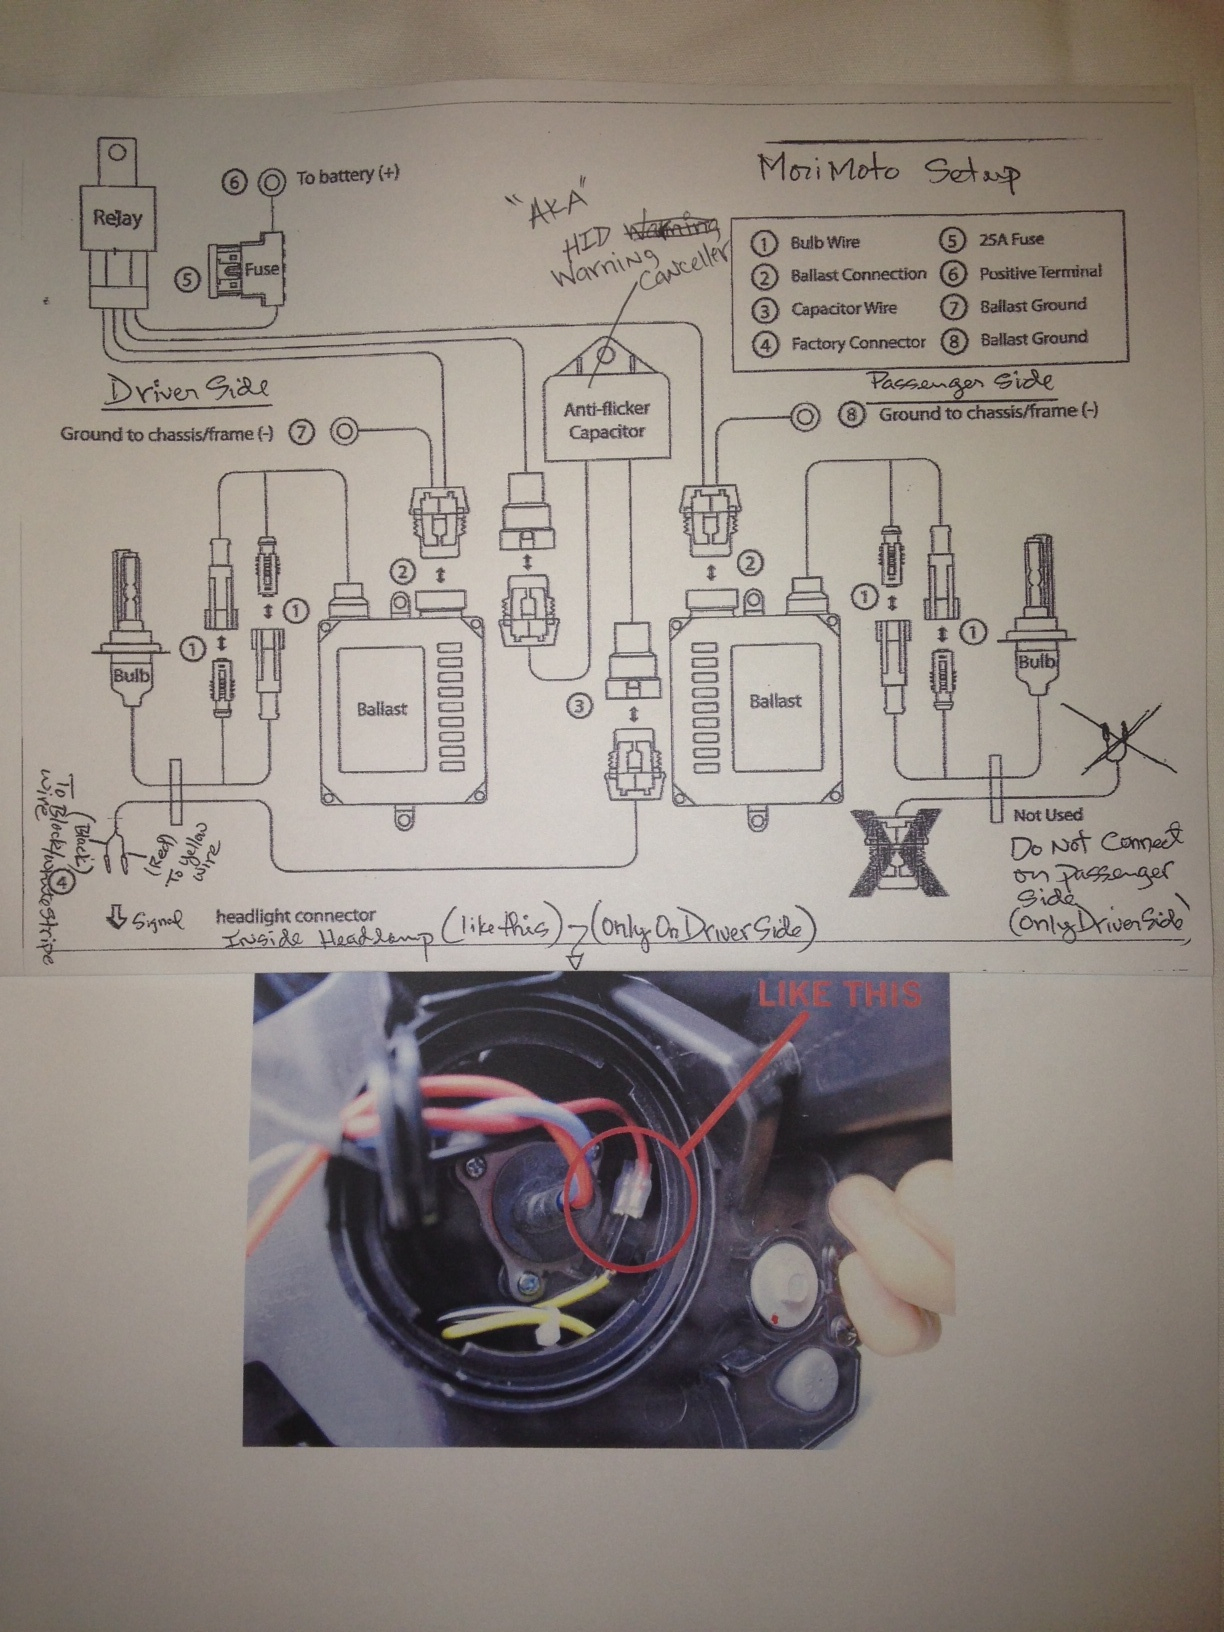 Trs Hid Hd Harness Wiring Diagram - Trs Wiring Diagram